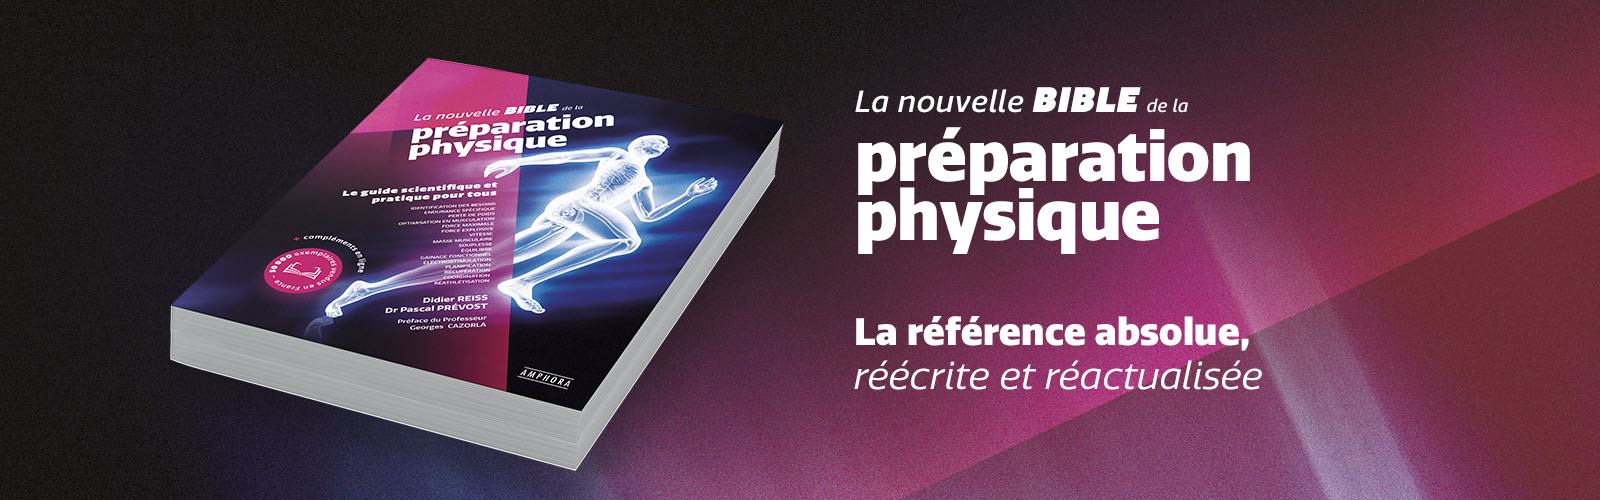 Bible_prepa_physique_slide_v1